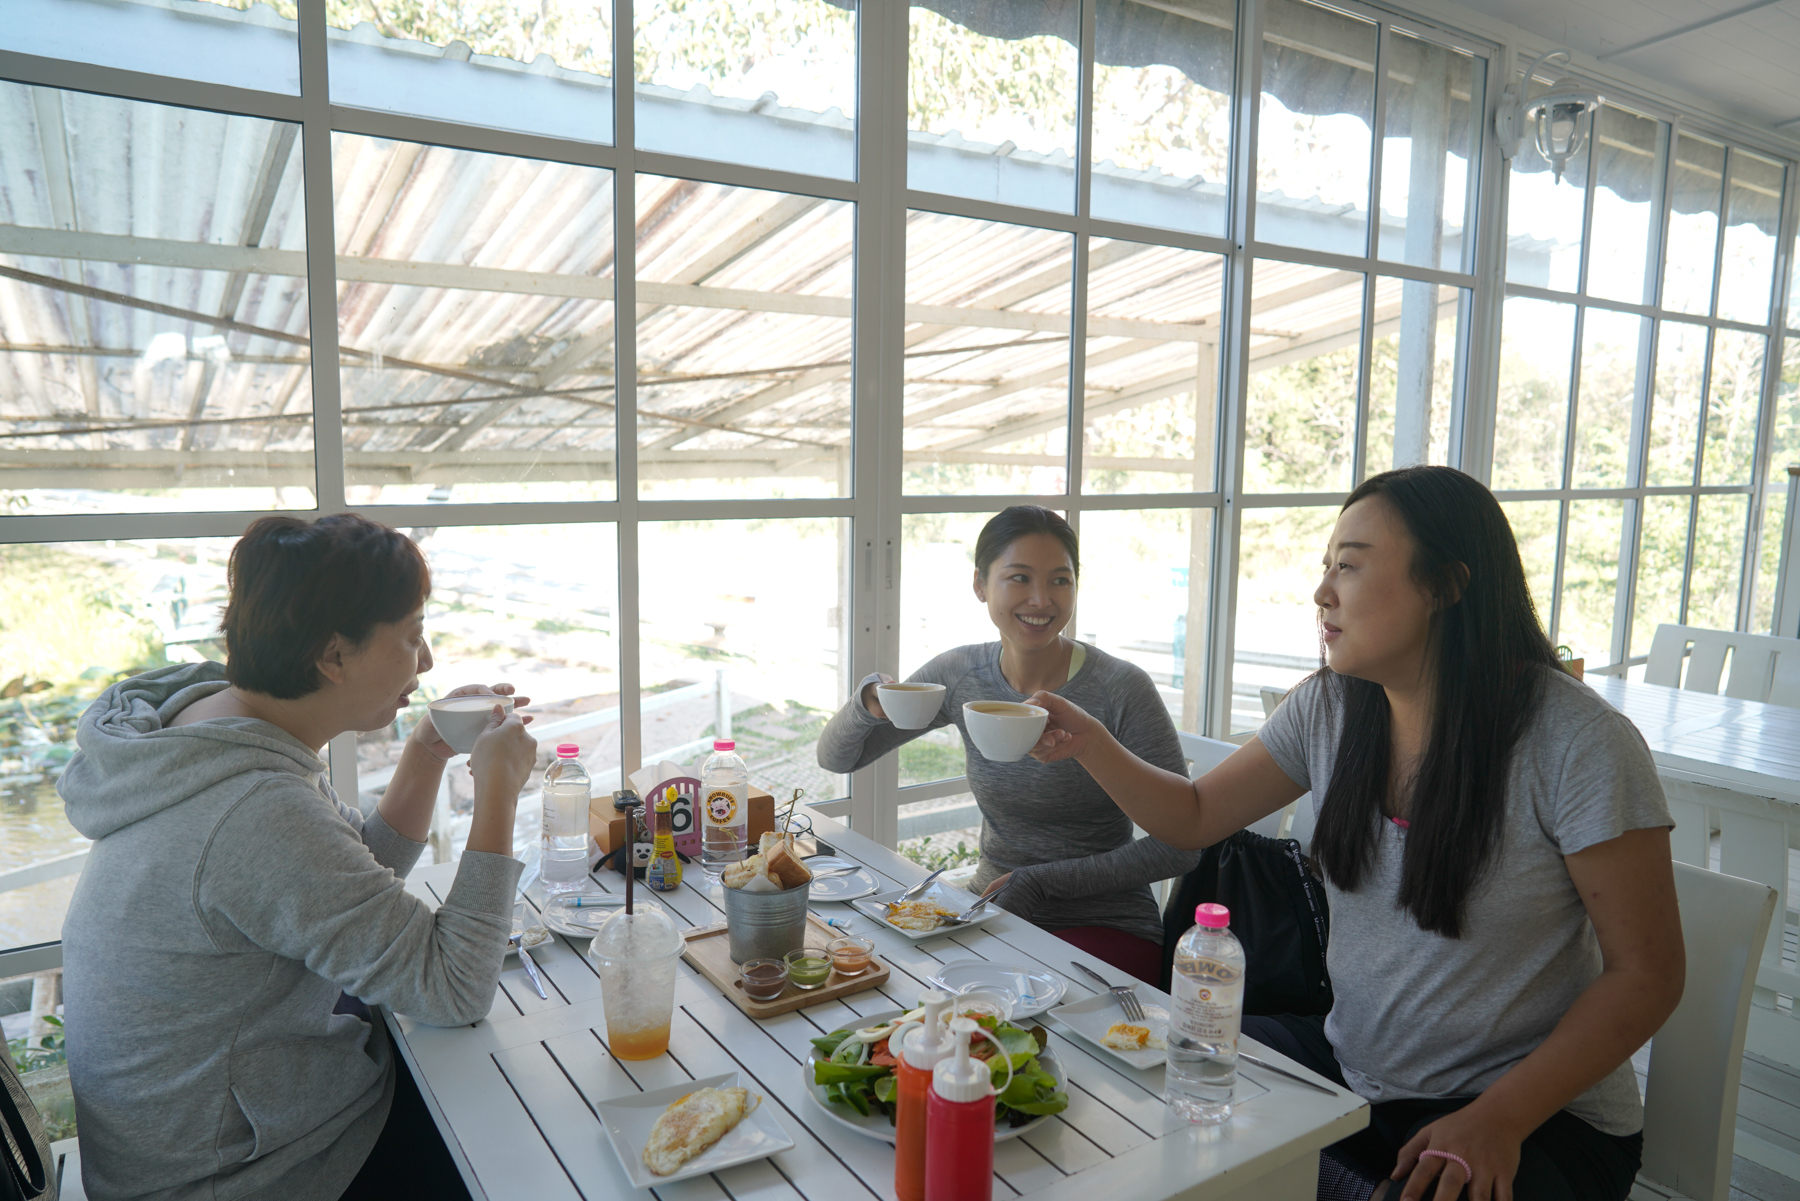 Ding Dian meets up with two other Chinese mothers for breakfast after sending her children to school, January 16, 2019. Chinese parents rarely socialize with locals or other foreigners in Chiang Mai because of their limited English or Thai.